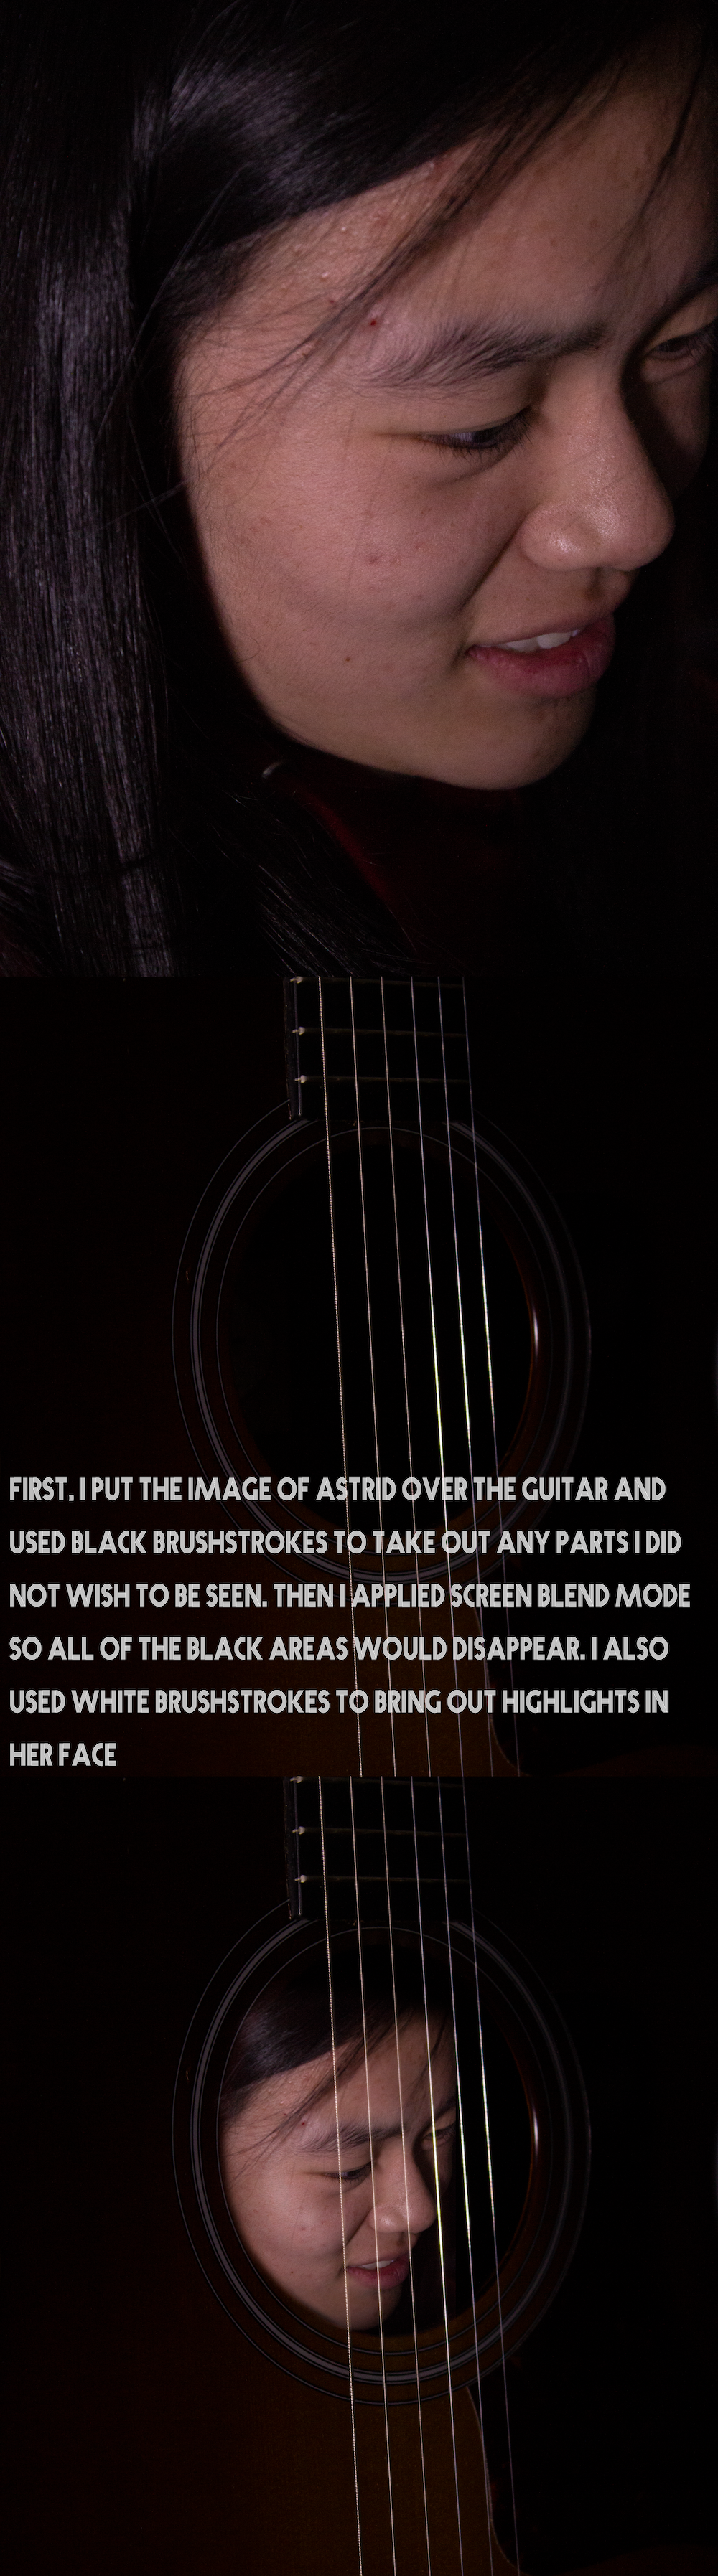 Photo Transformation: Face in Guitar Like That One The Office Meme